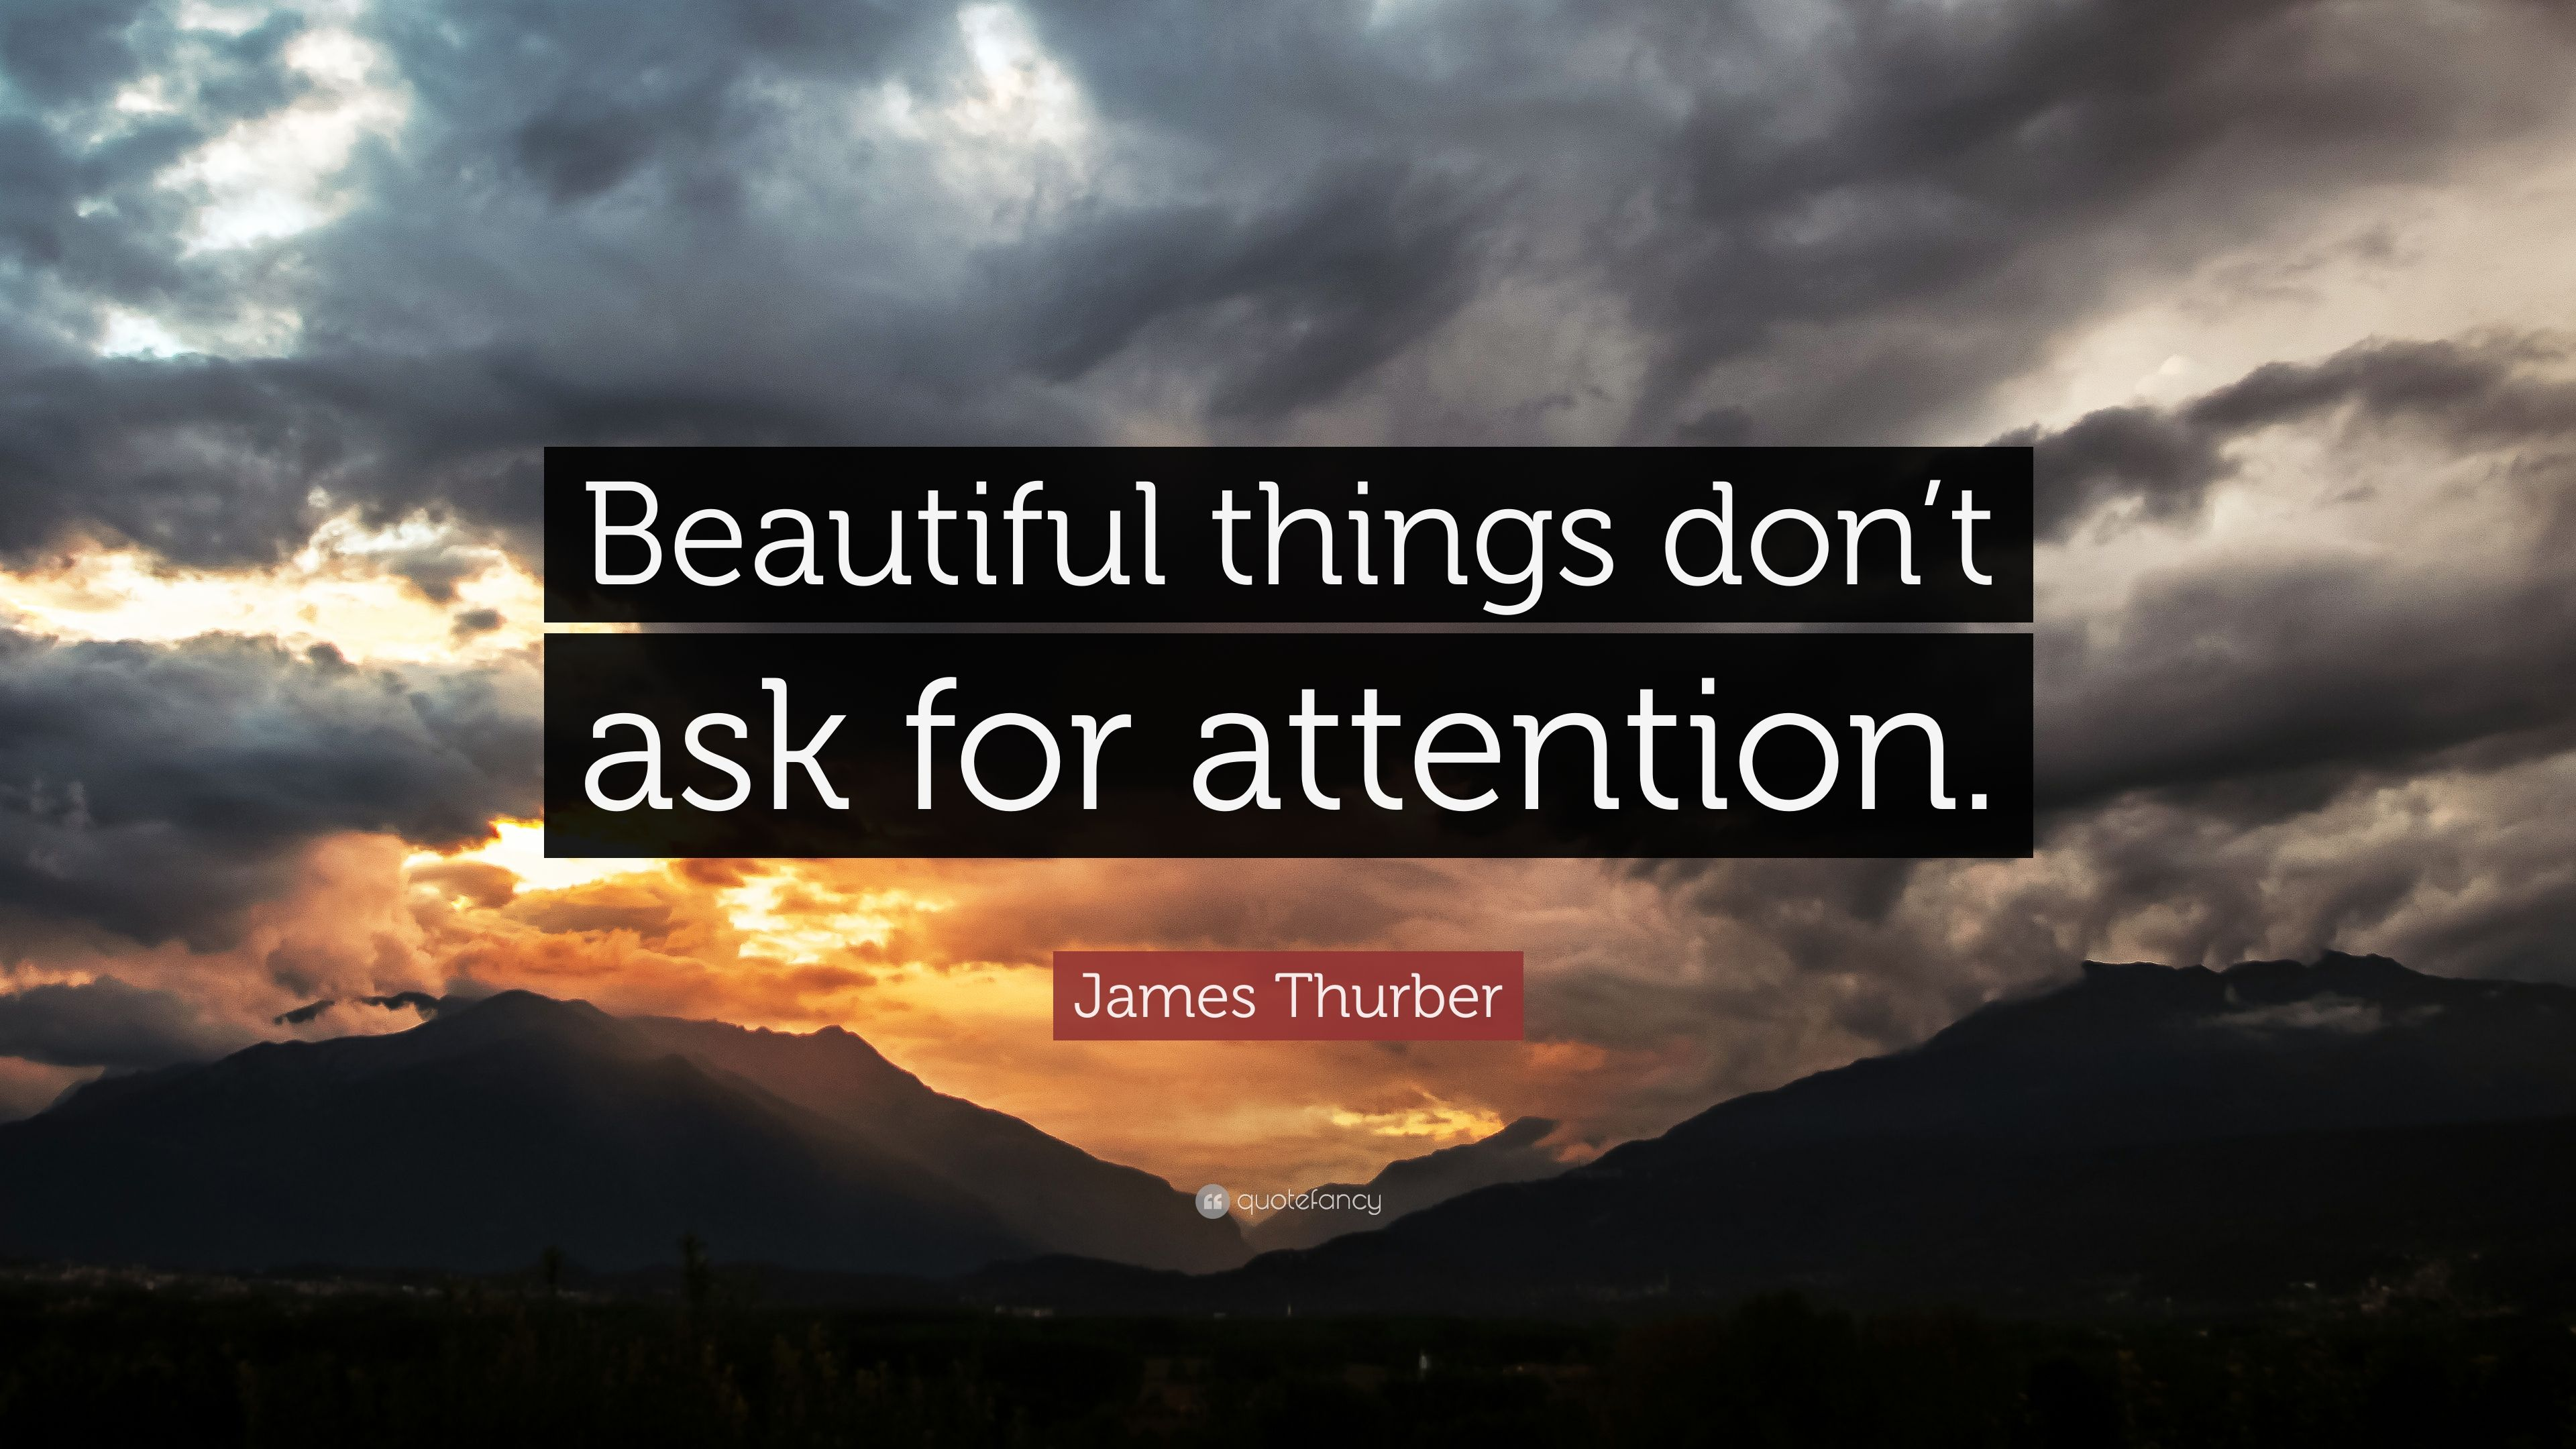 james thurber quote beautiful things don t ask for attention 11 wallpapers quotefancy. Black Bedroom Furniture Sets. Home Design Ideas